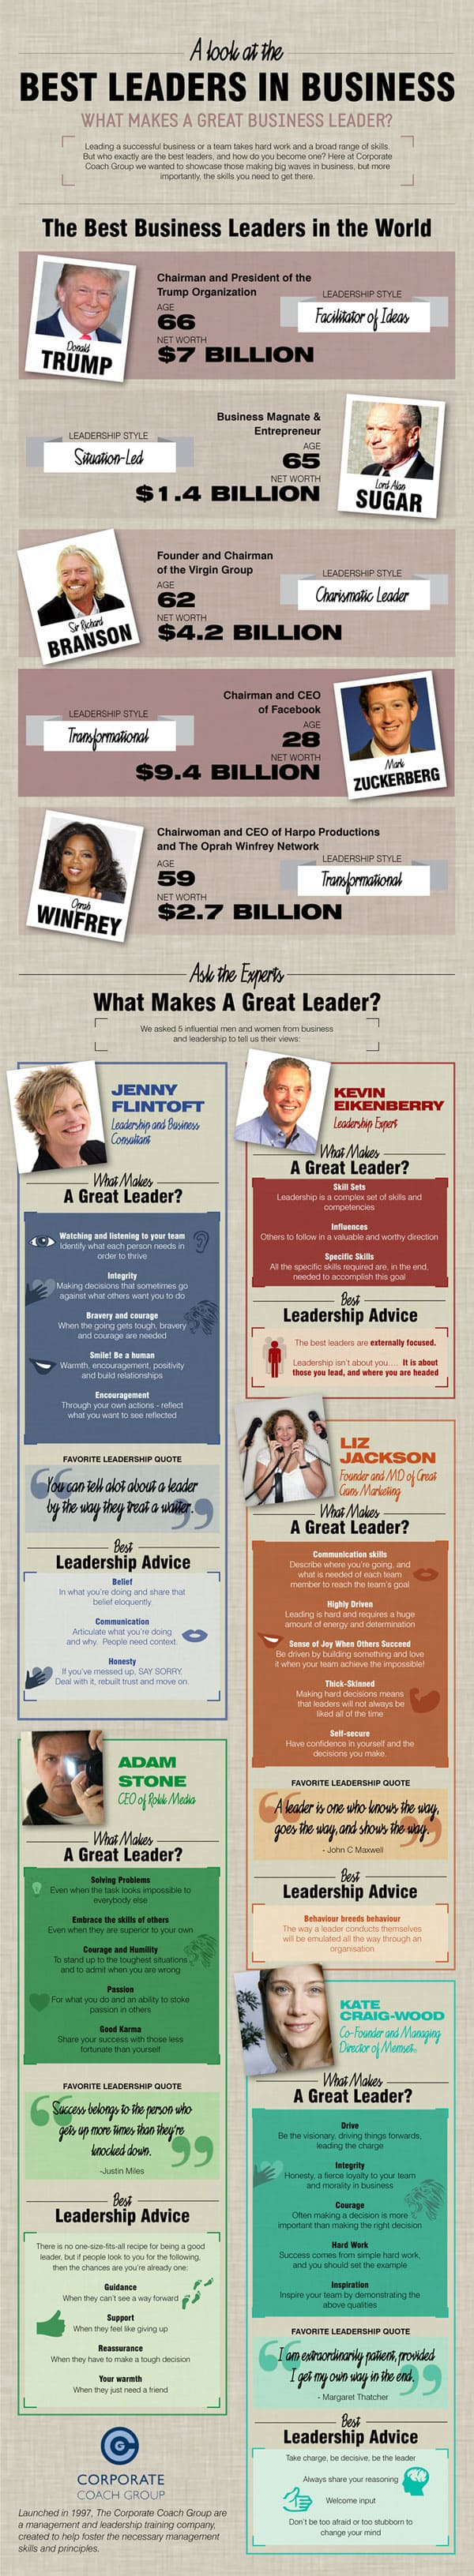 Best Leaders In Business Infographic